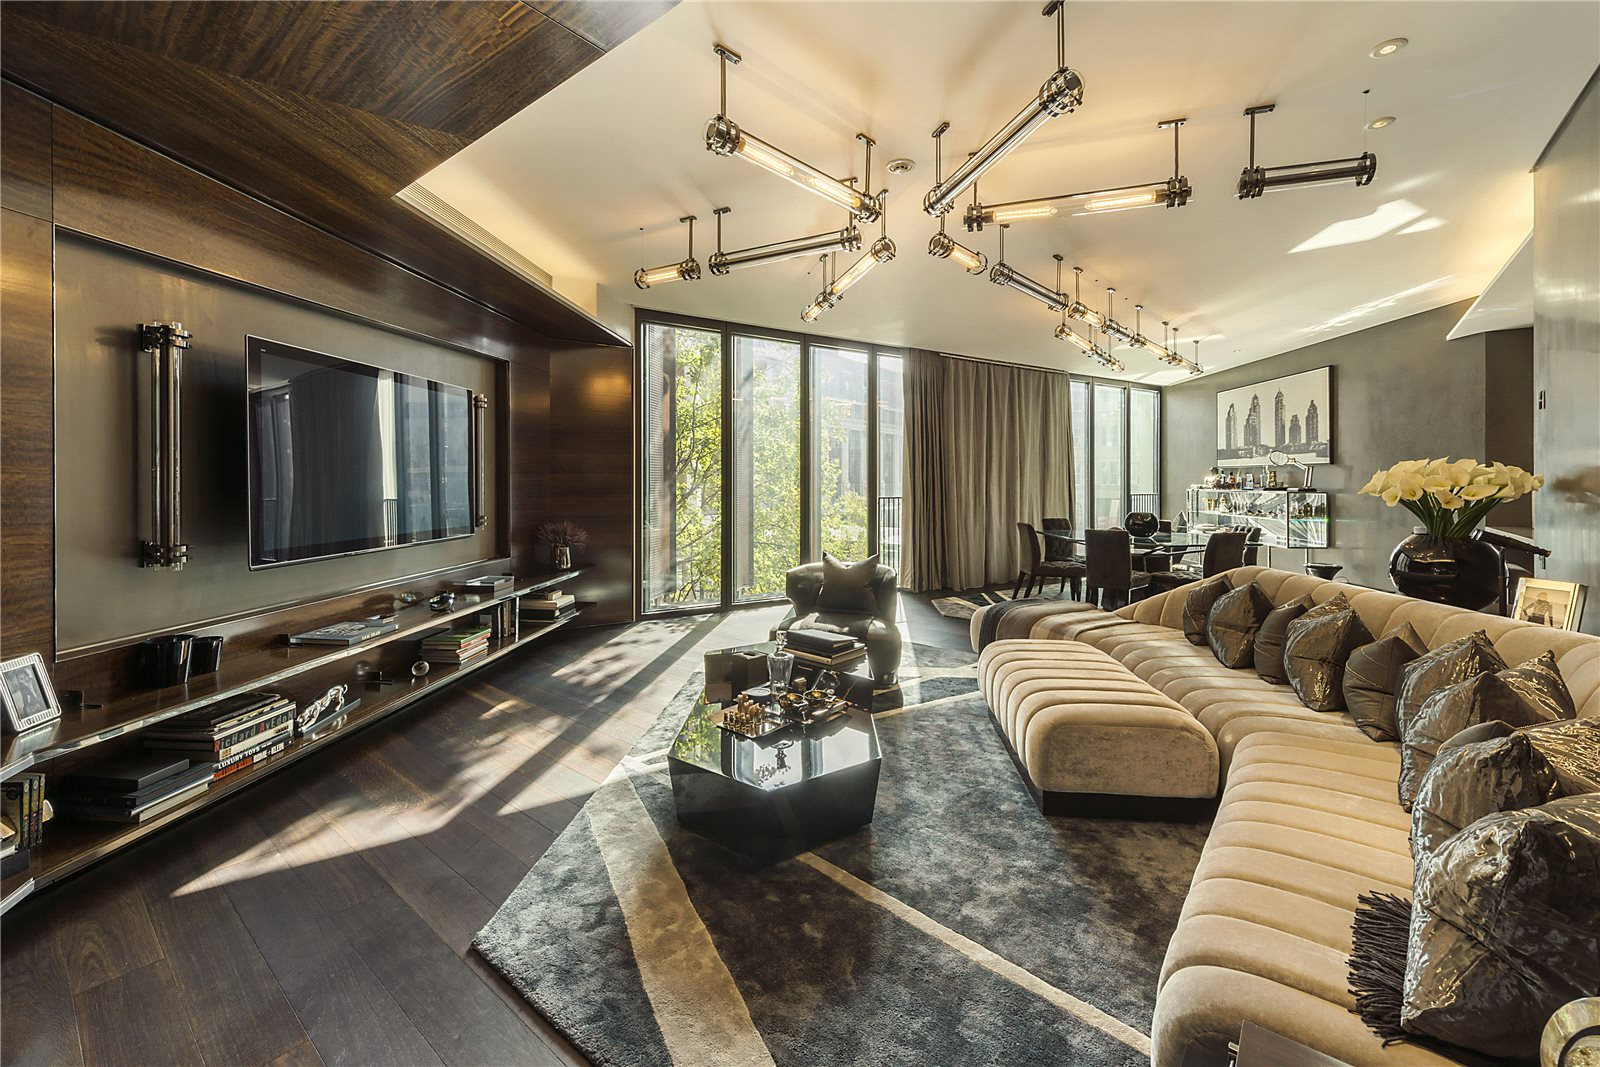 London Luxury Real Estate for Sale | Christie's ...